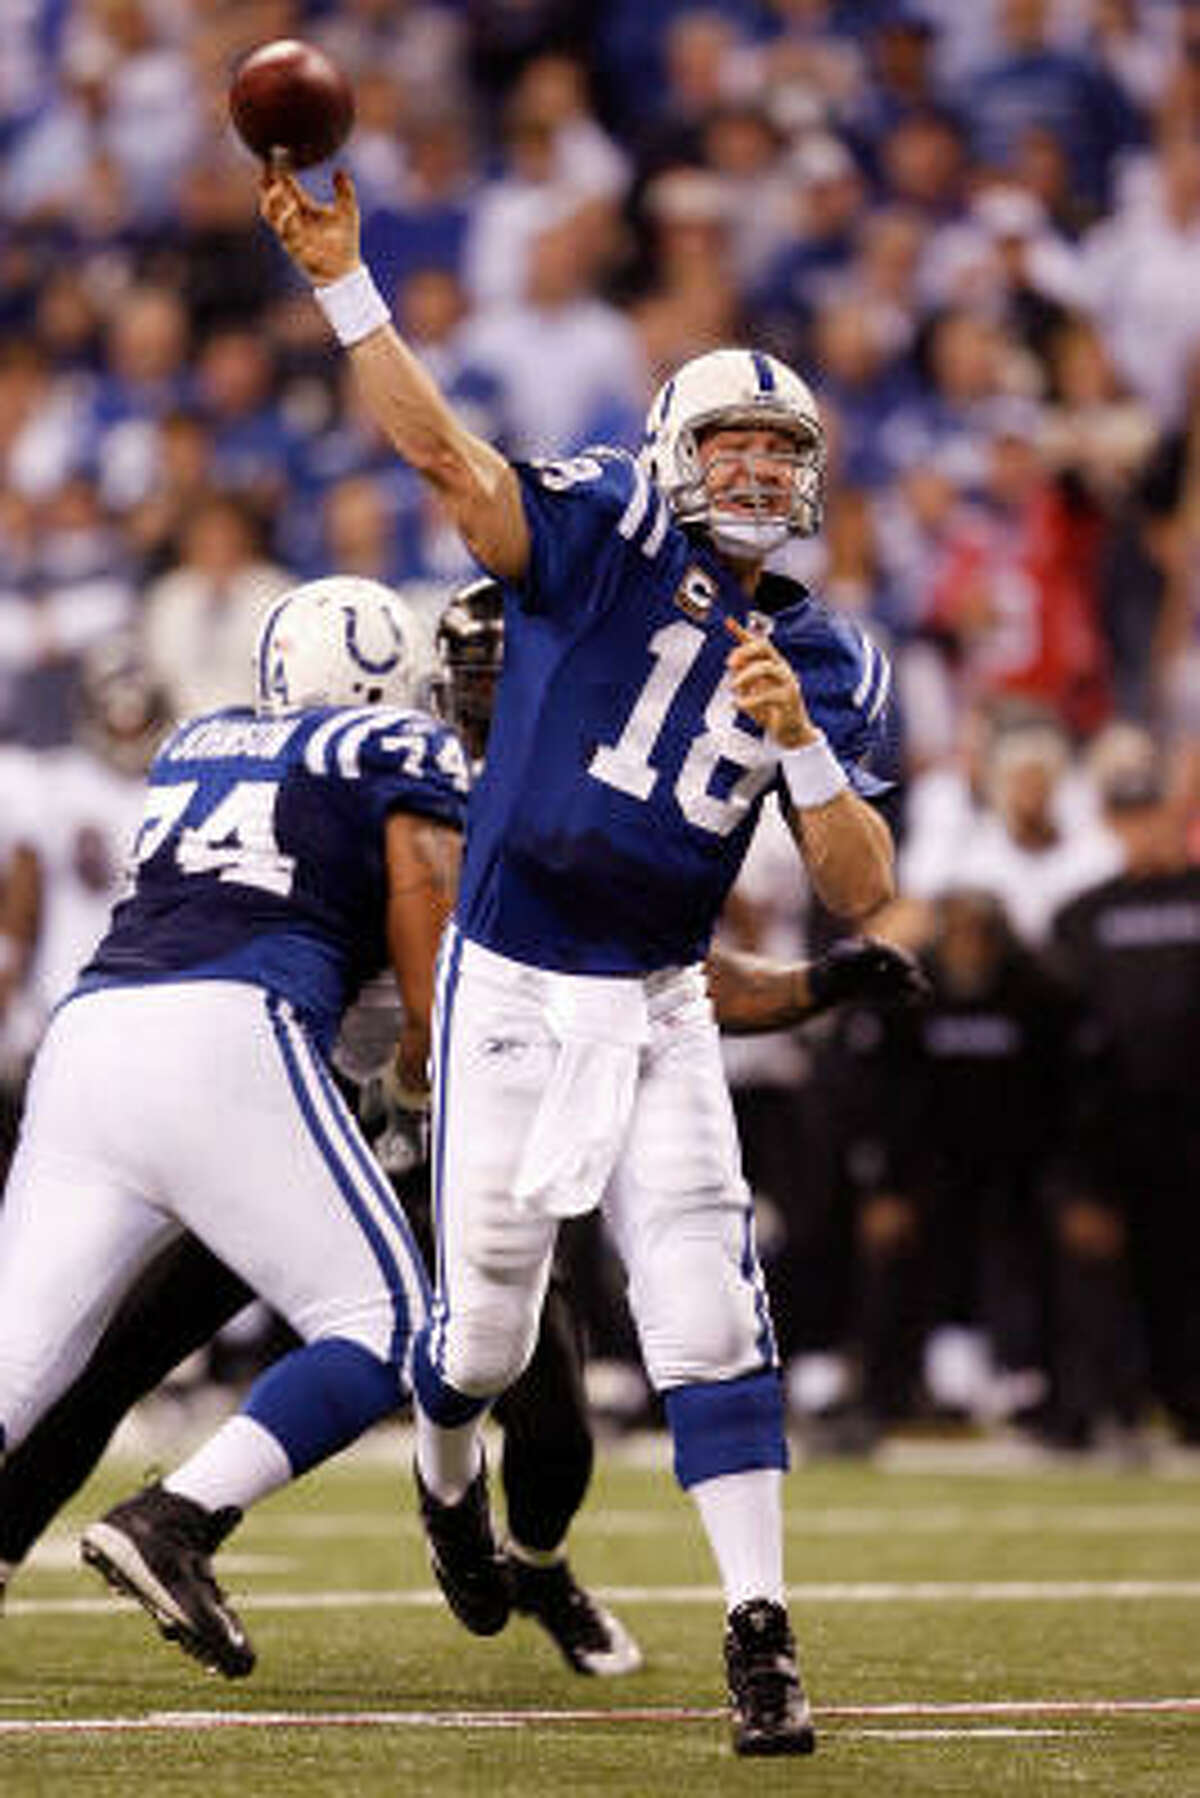 Since Peyton Manning became the Colts' starting quarterback as a rookie in 1998, 12 teams have started at least 13 different quarterbacks.